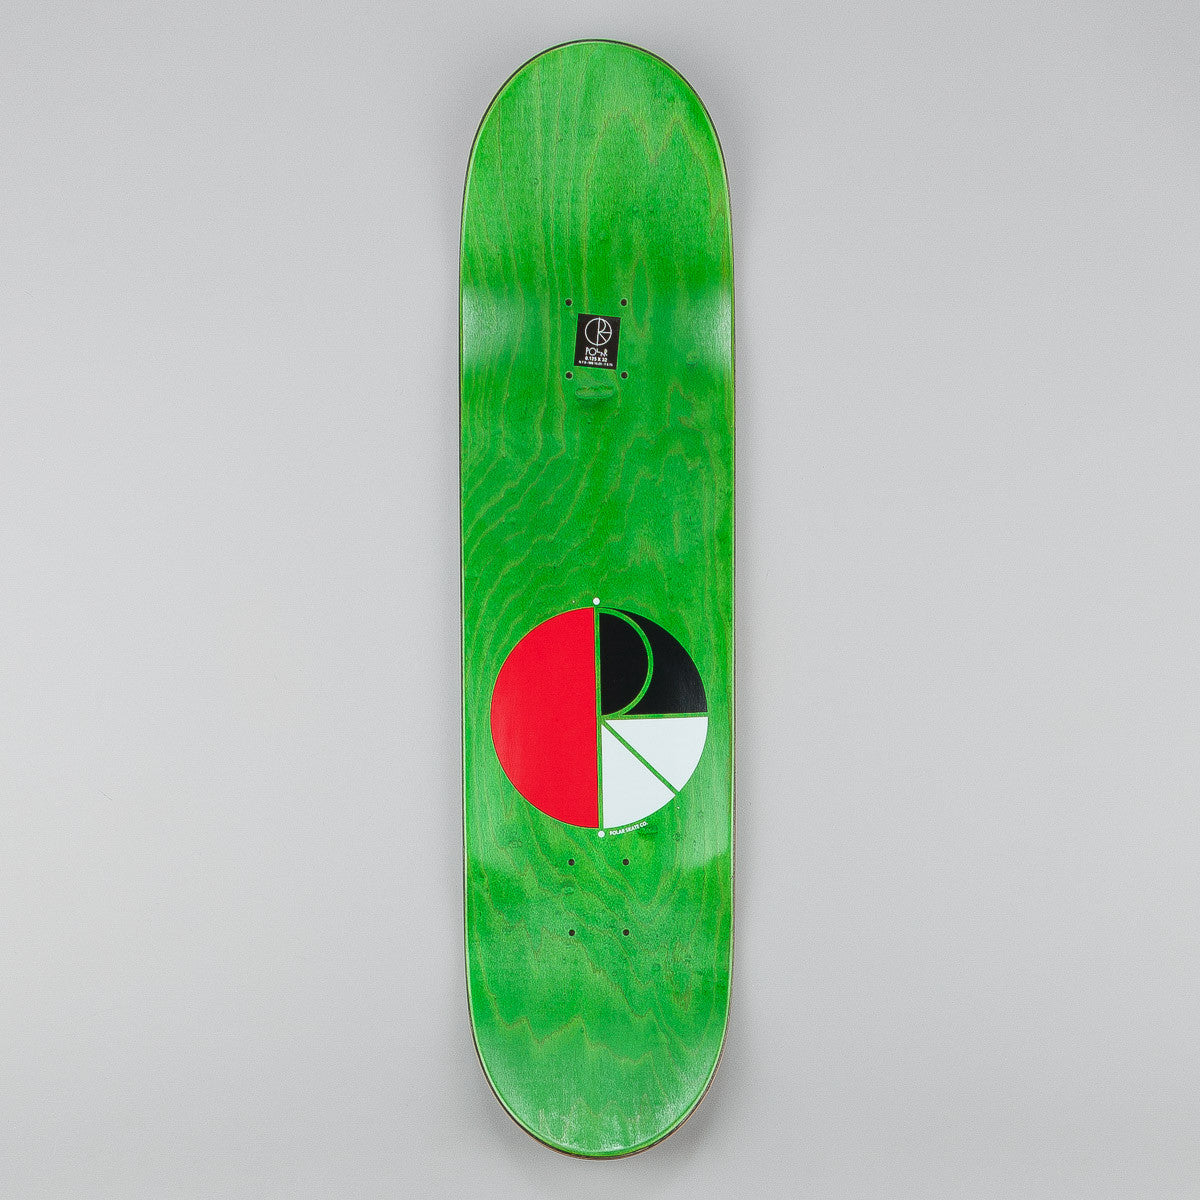 Polar AH BS Boneless Deck - White 8.125""